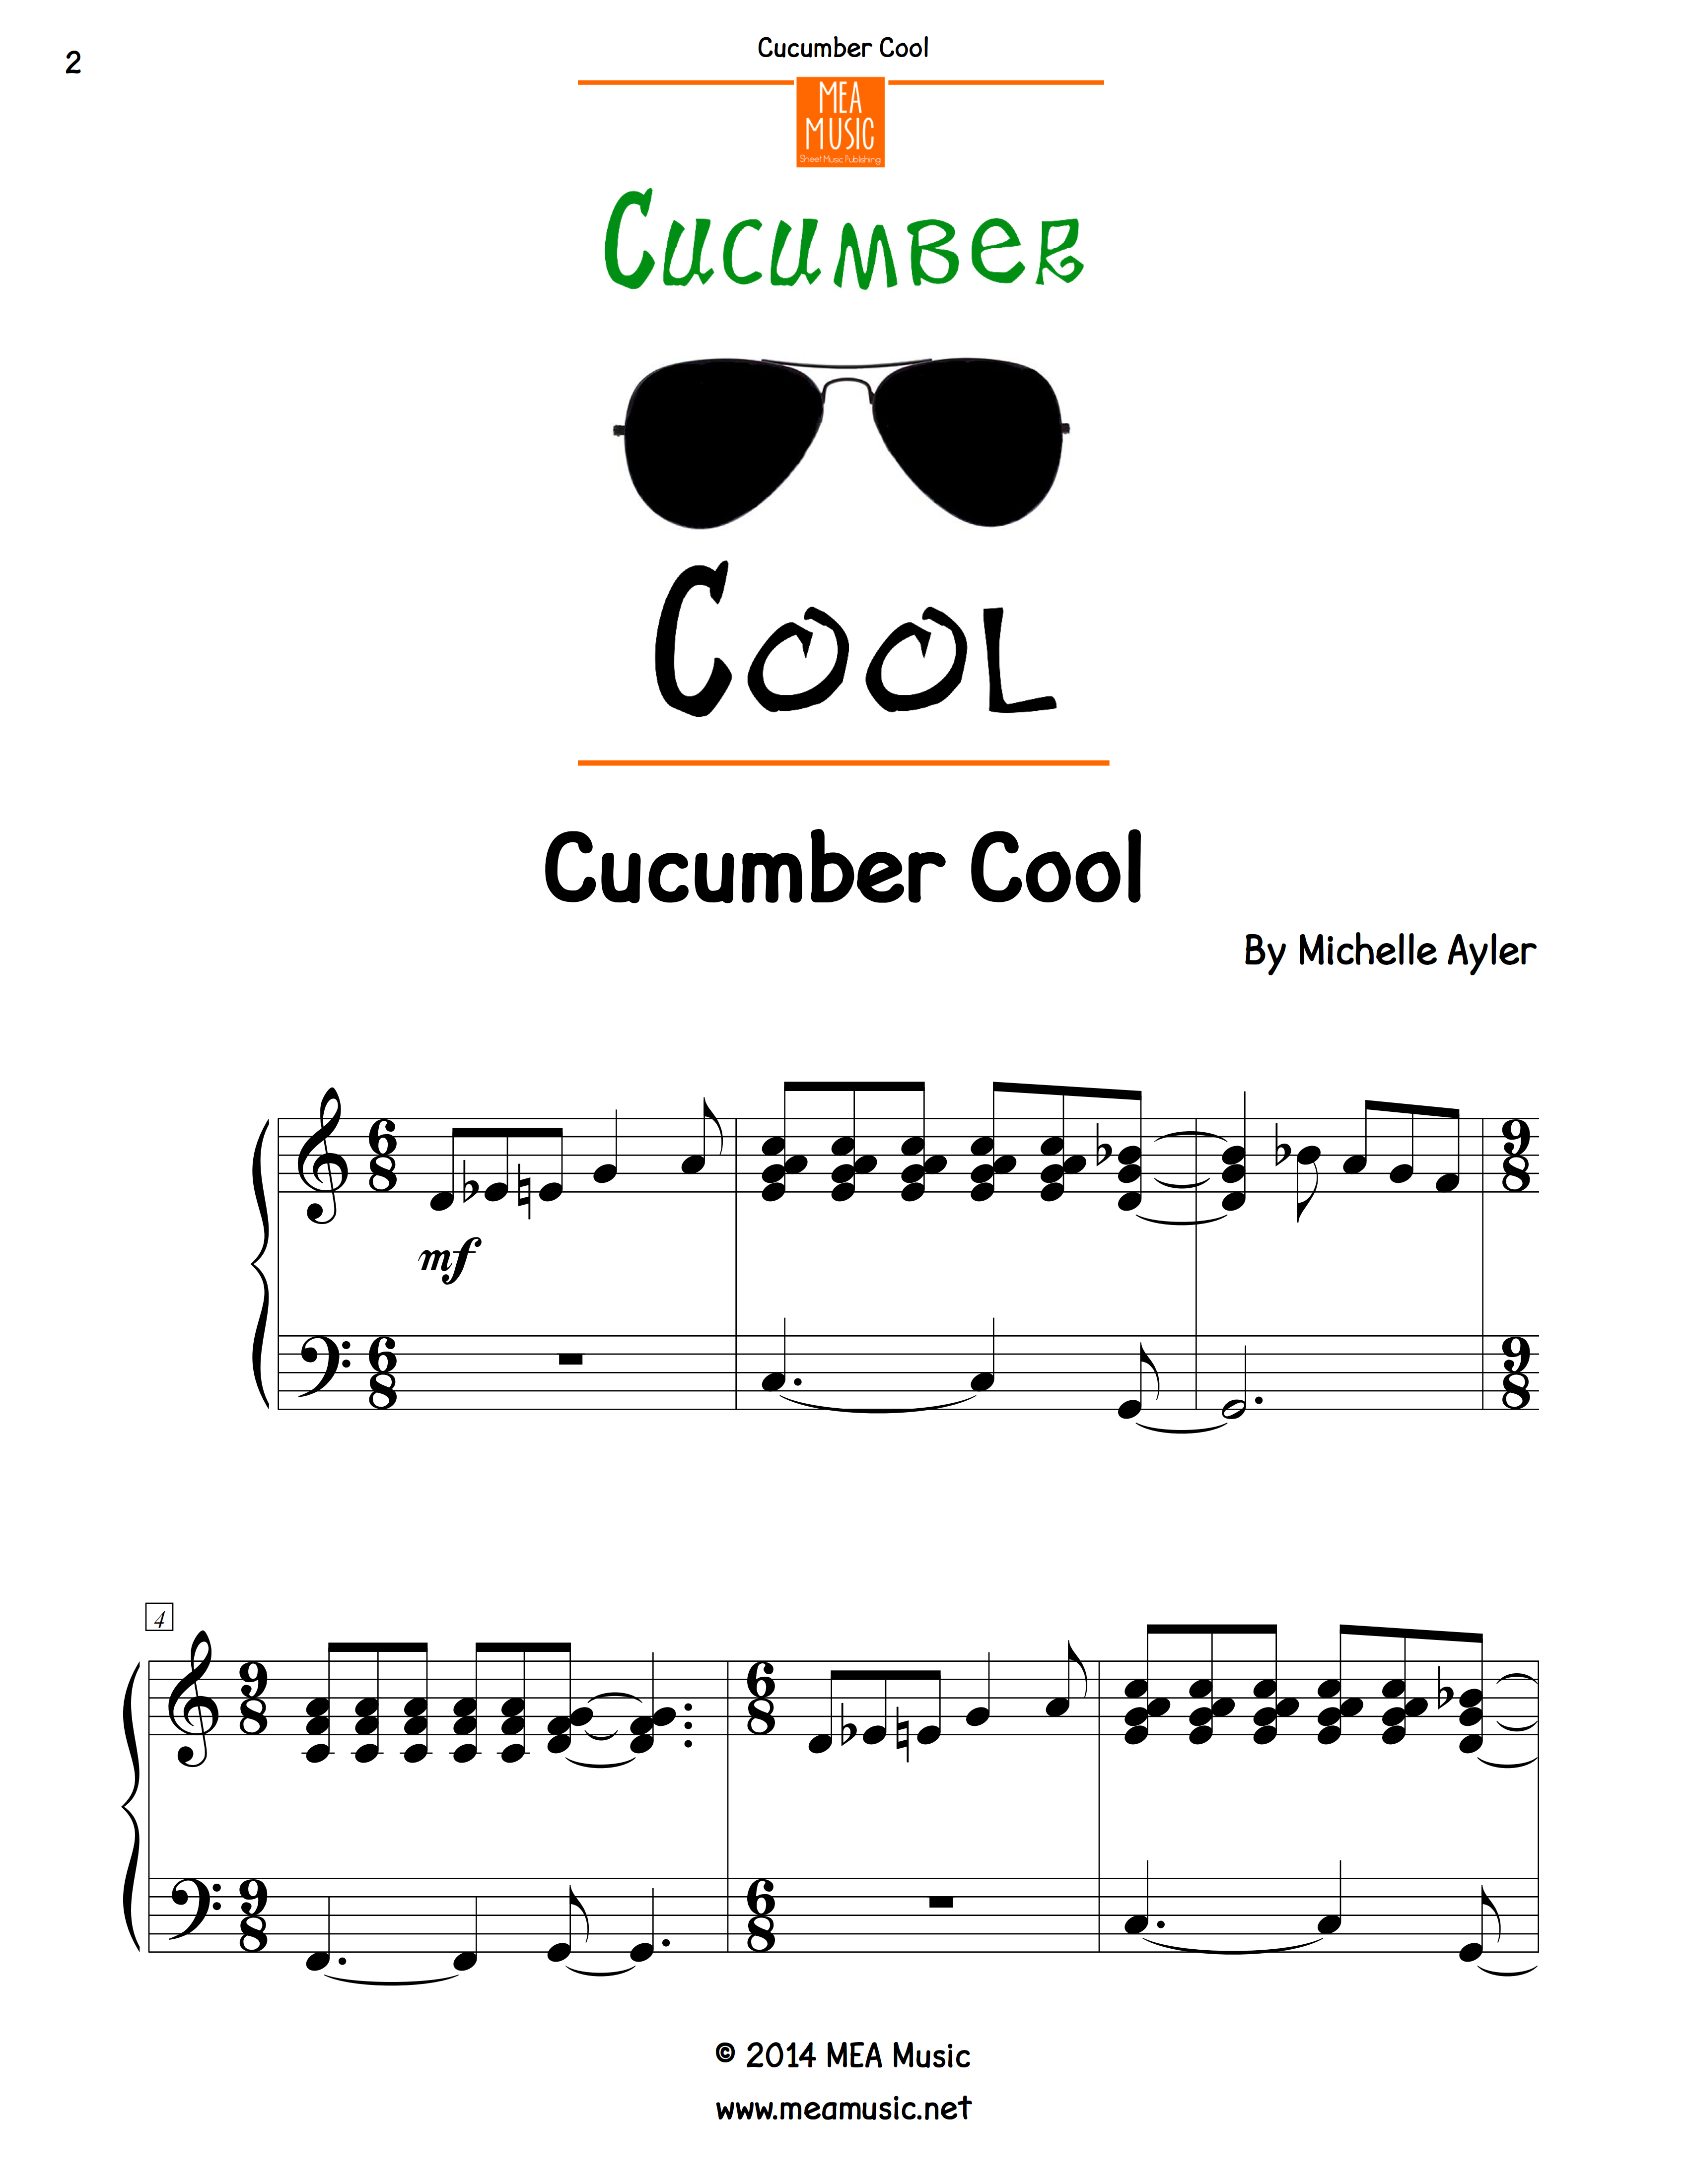 Cucumber Cool Advanced Piano Sheet Music  Download instantly